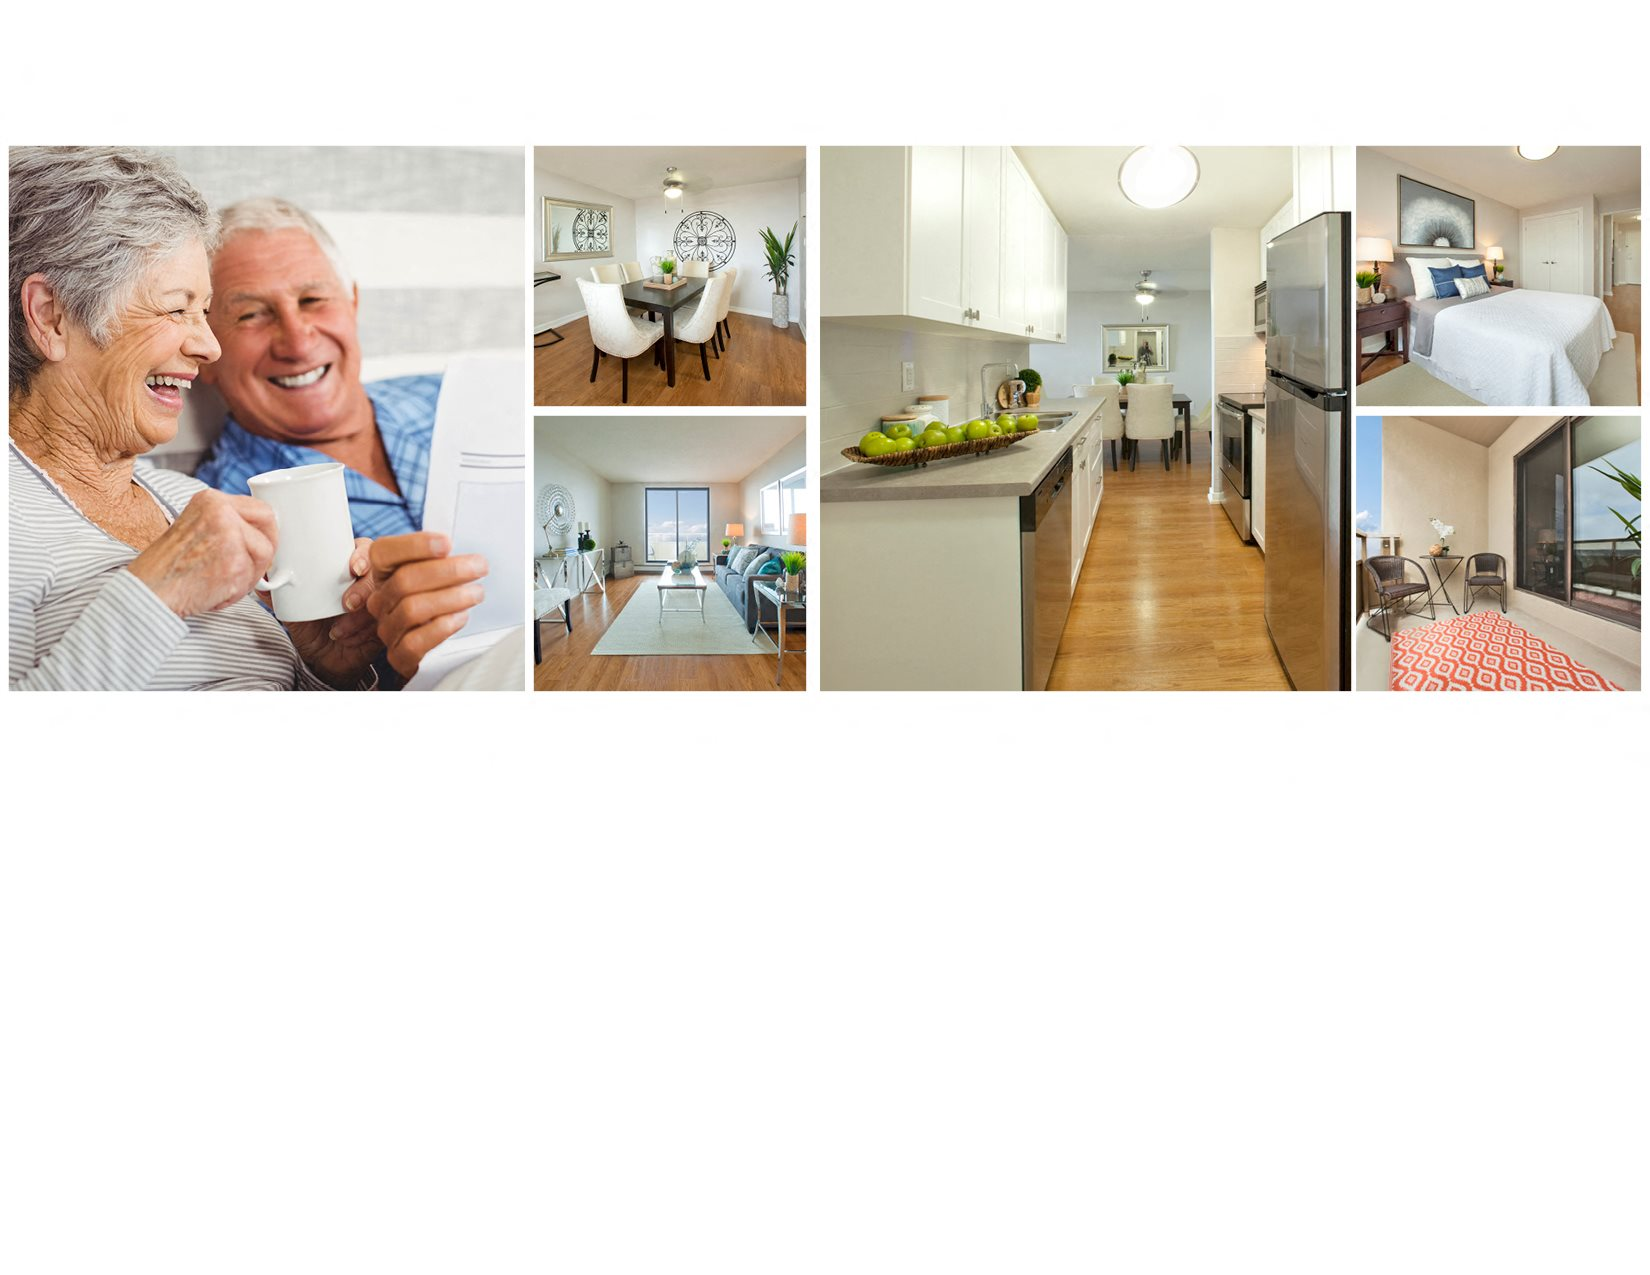 Collage of interior, exterior, and lifestyle images at Albany Place in Fort Erie, ON